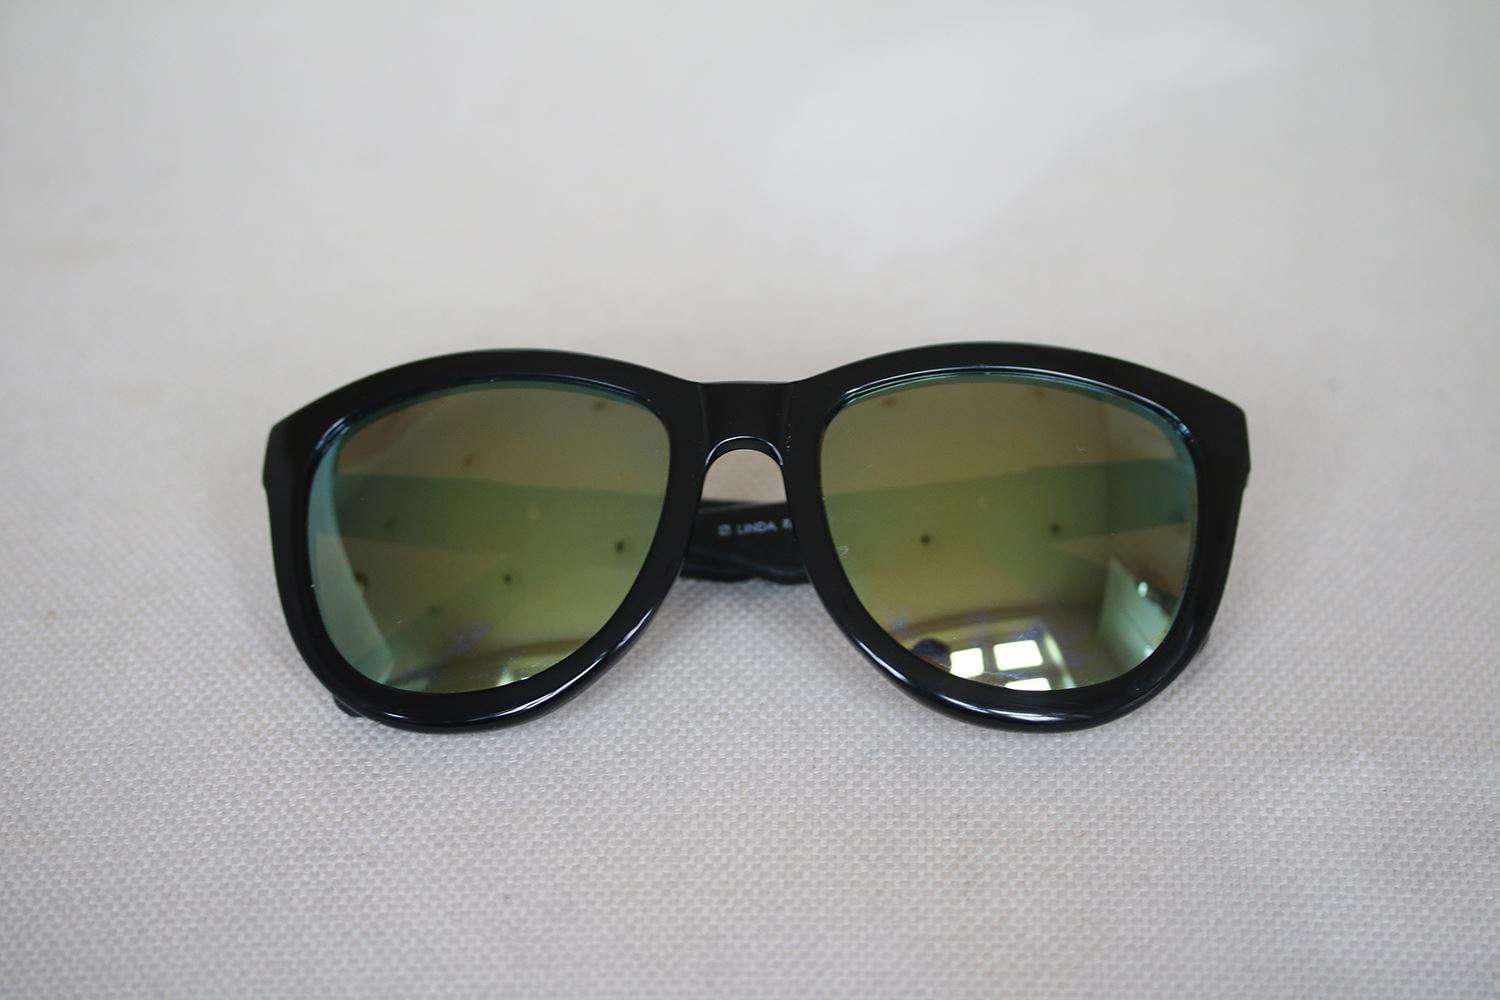 THE ROW LINDA FARROW 7 C17 D-FRAME MIRRORED SUNGLASSES